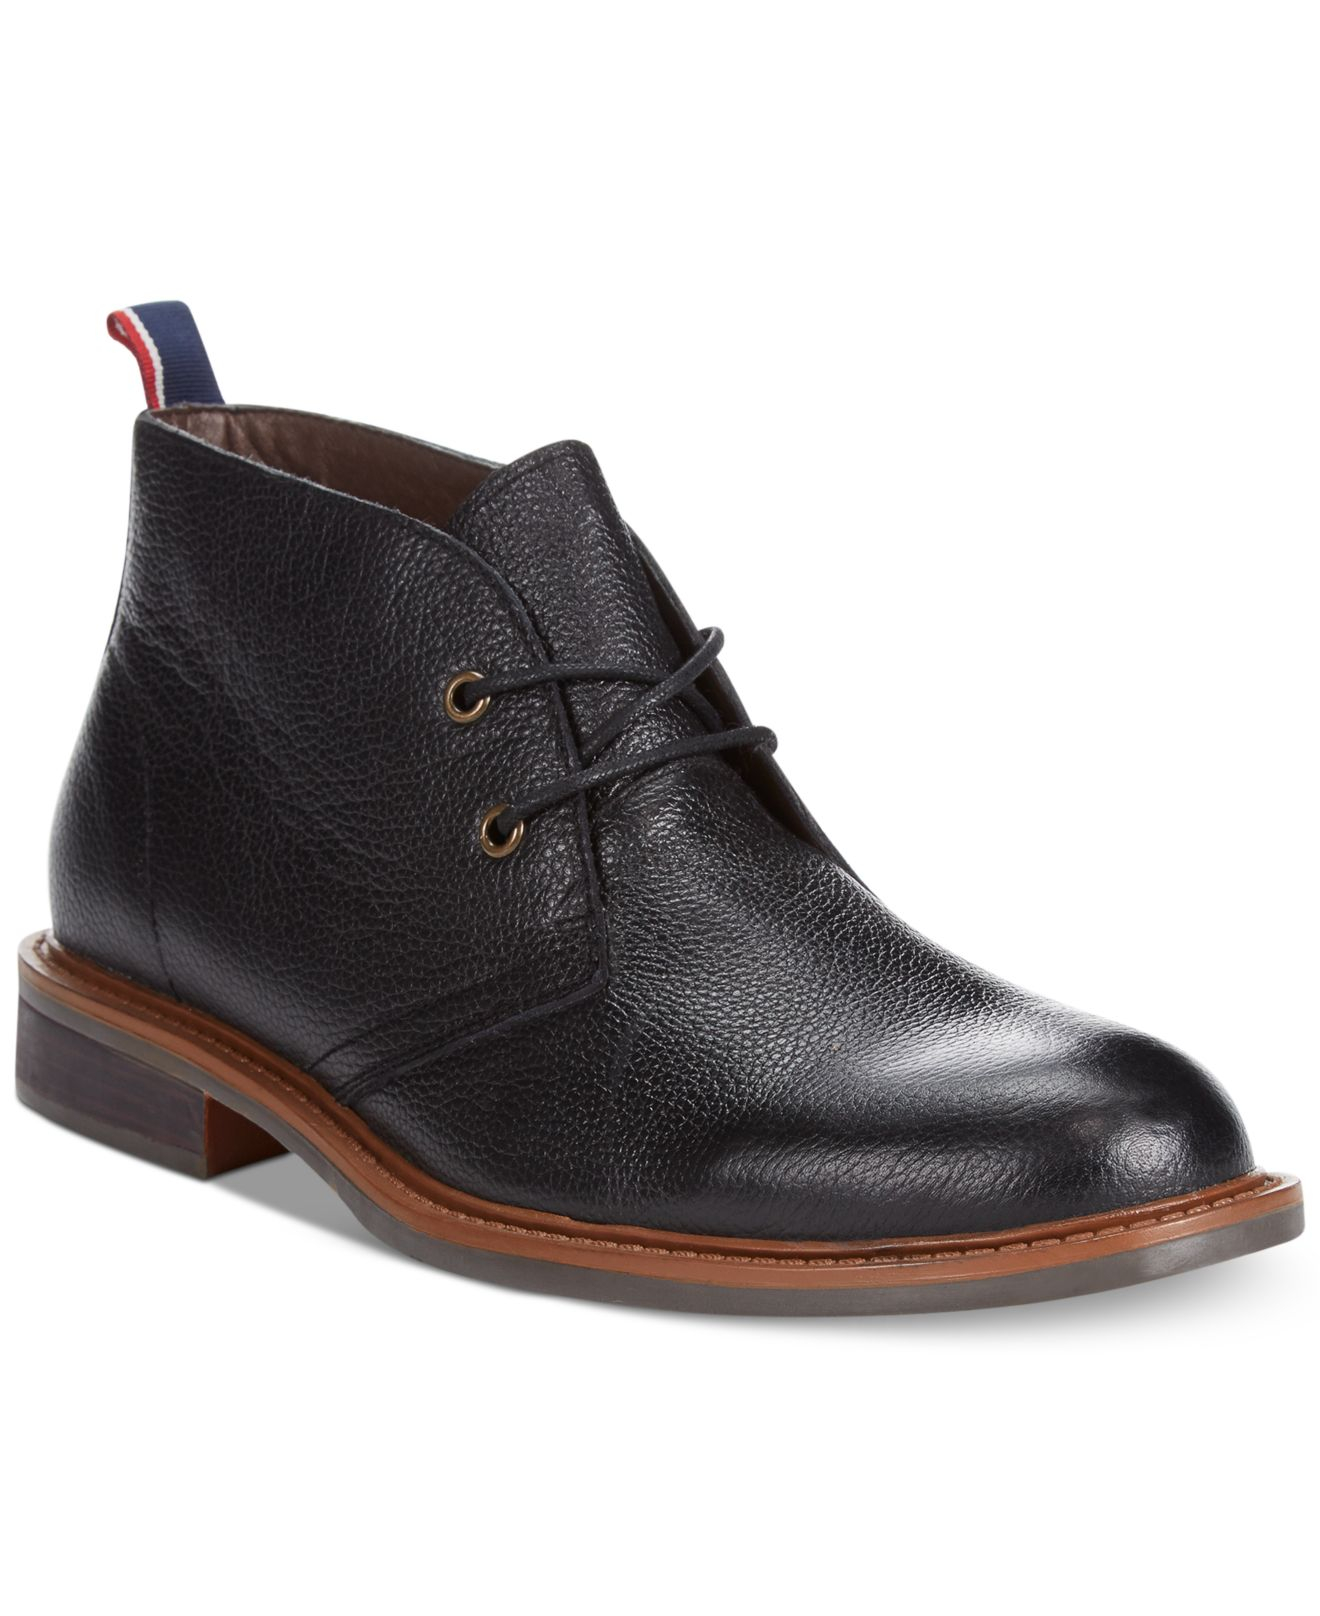 tommy hilfiger stoneham2 chukka boots in black for men lyst. Black Bedroom Furniture Sets. Home Design Ideas